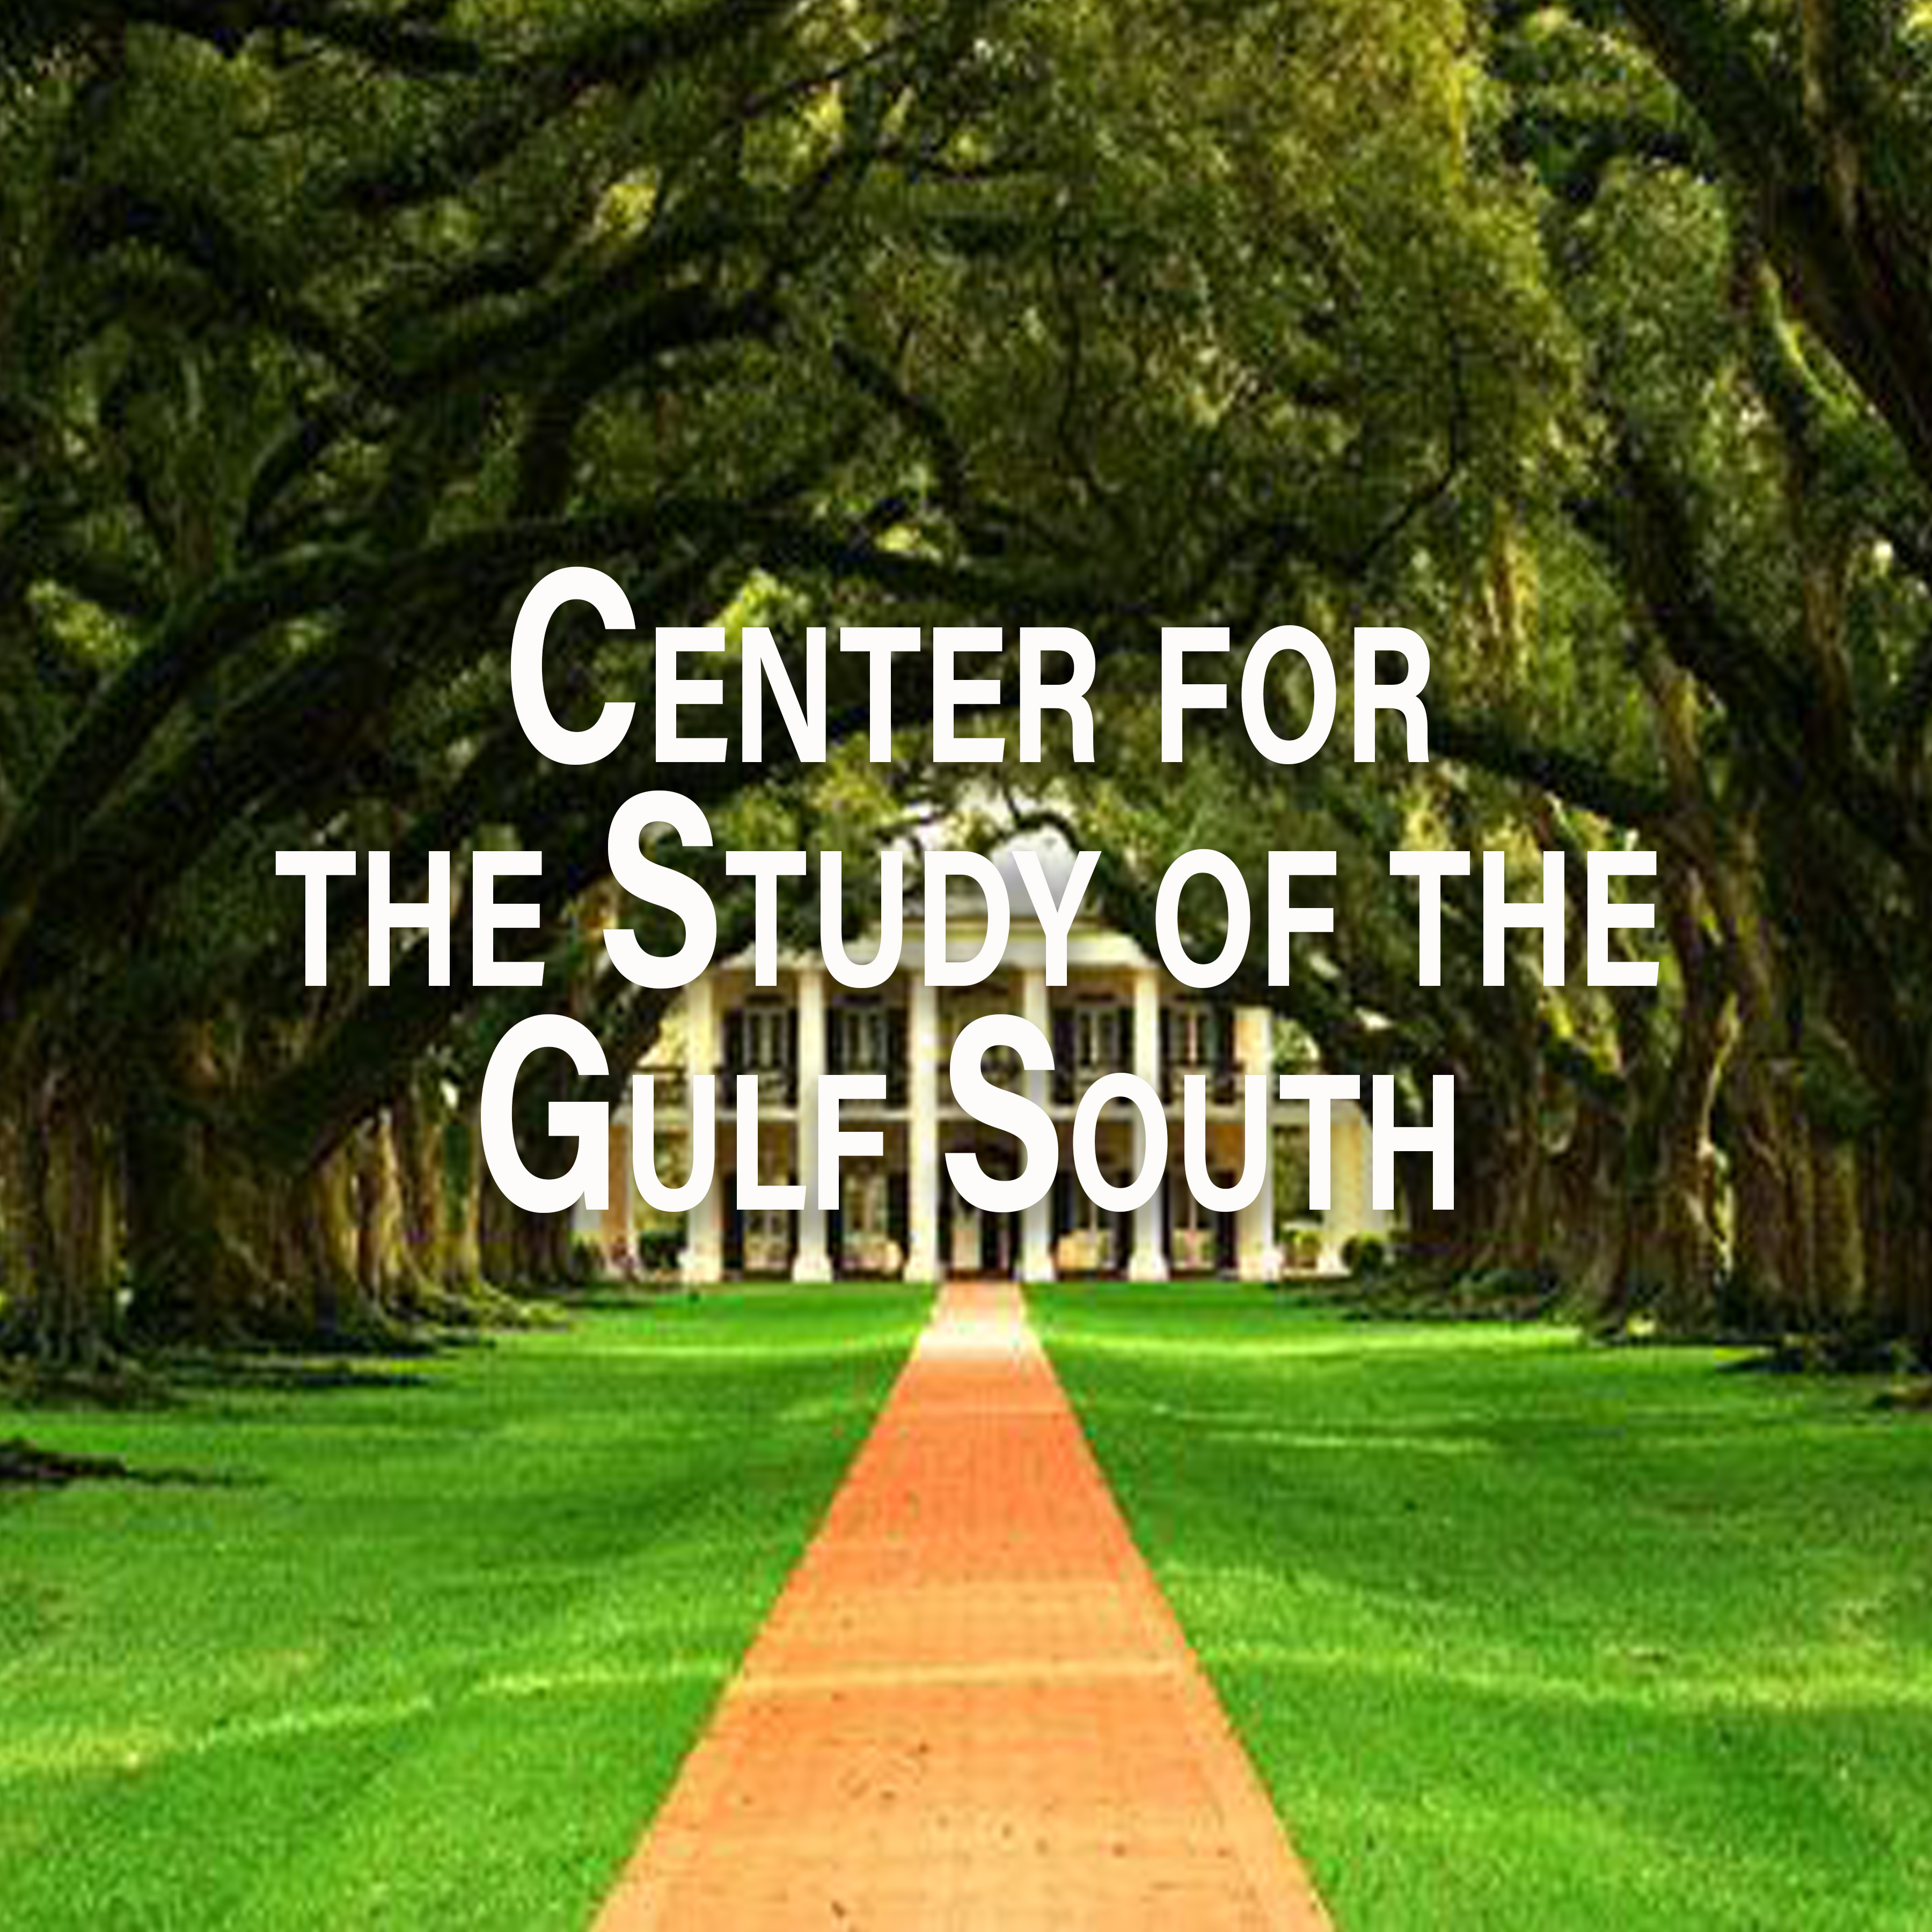 Center for the Study of the Gulf South